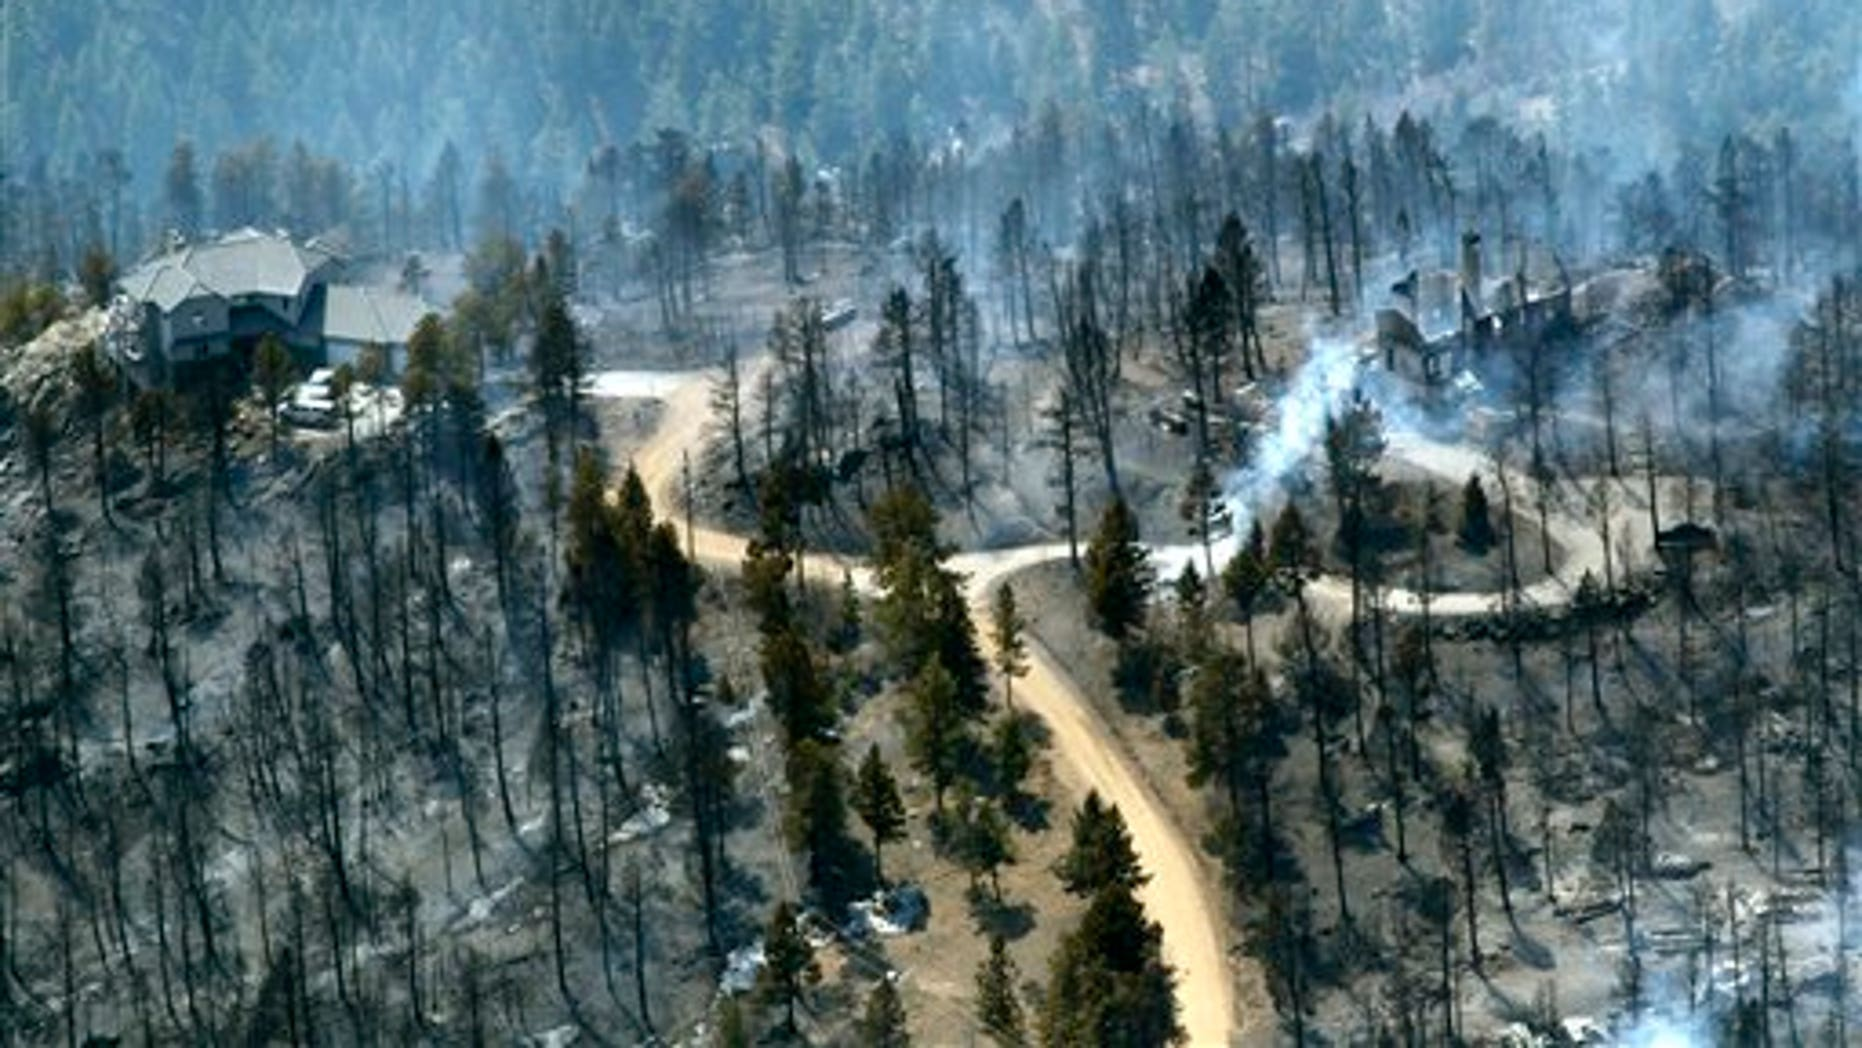 March 27: One home stands untouched at left while another home at right smolders after burning in the Lower North Fork Wildfire in the foothills community of Conifer, Colo., southwest of Denver.